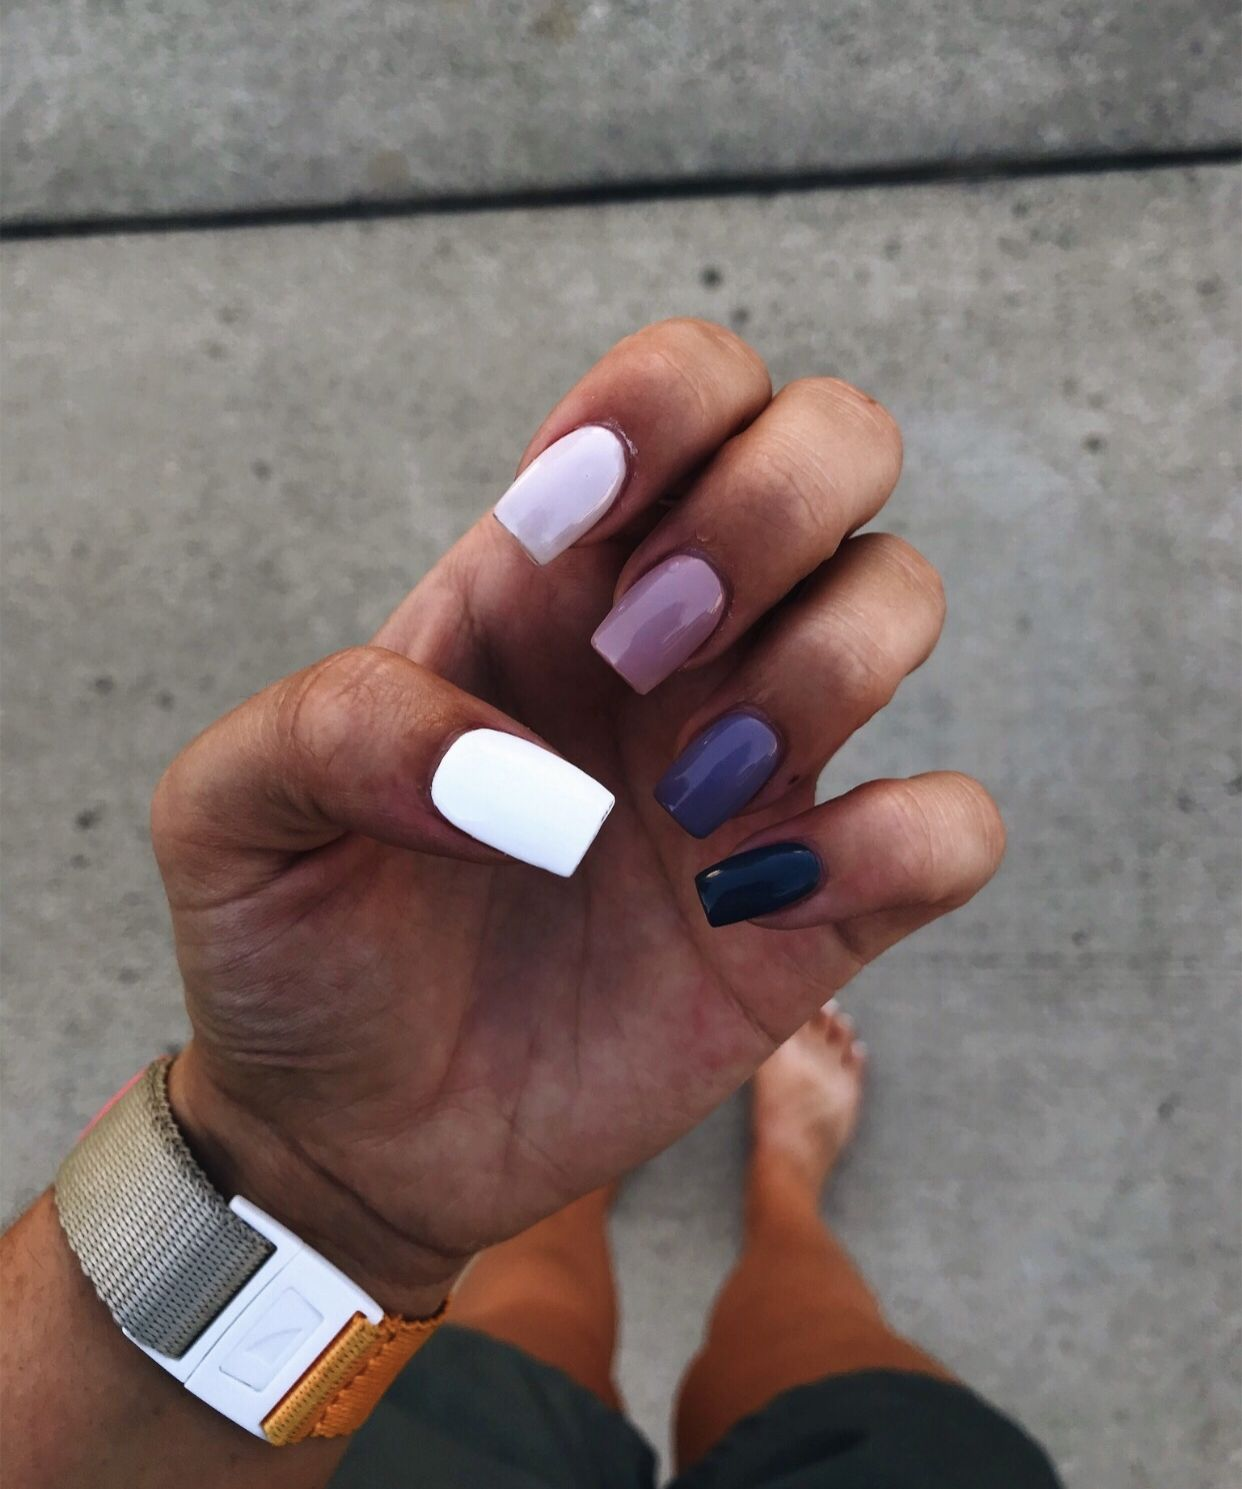 Pin By Brianna Florian On N A I L S Pretty Acrylic Nails Dream Nails Short Acrylic Nails